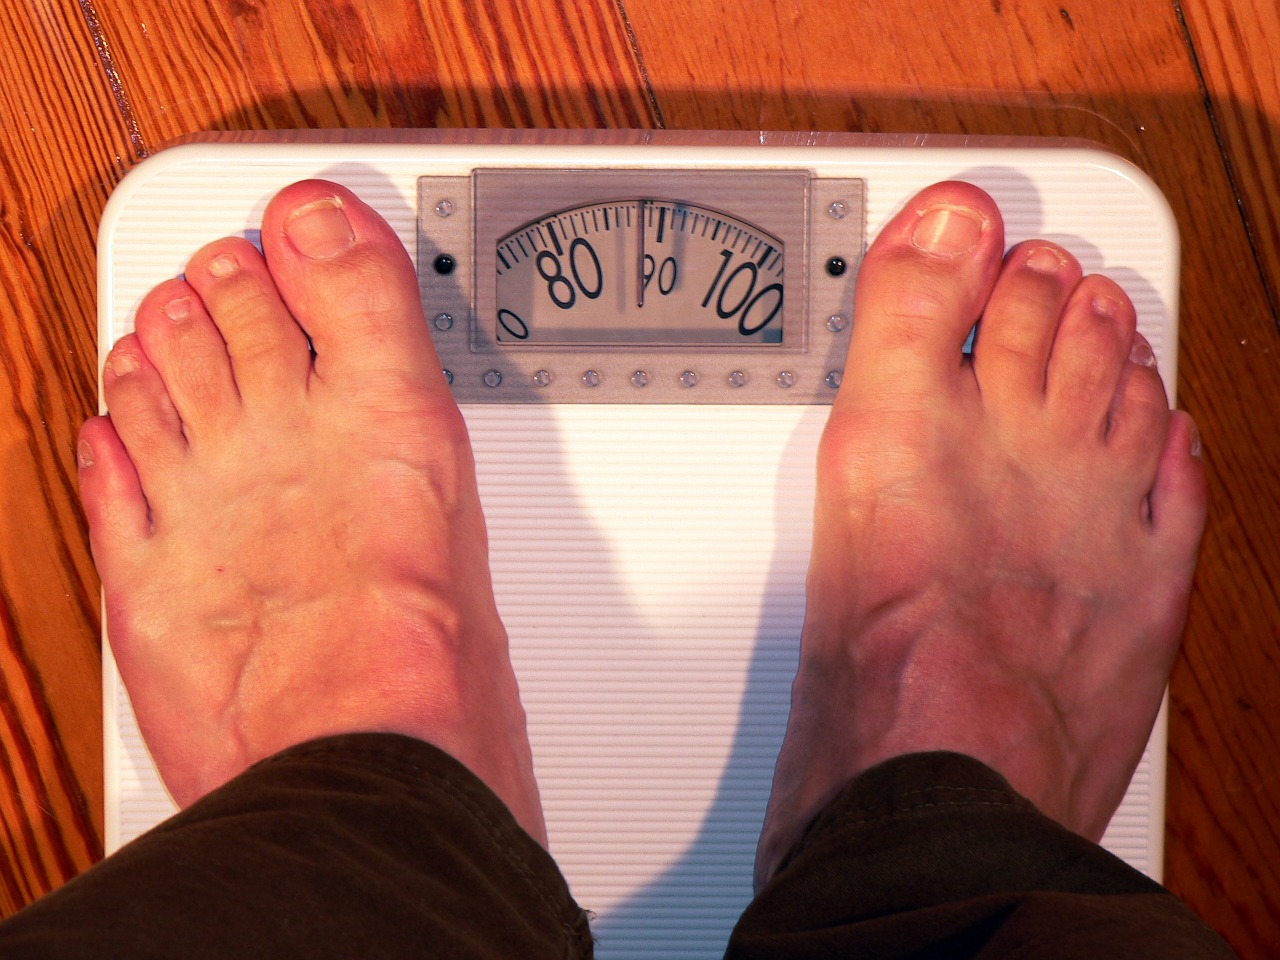 Can Being Overweight be Healthier than 'Normal' Weight?